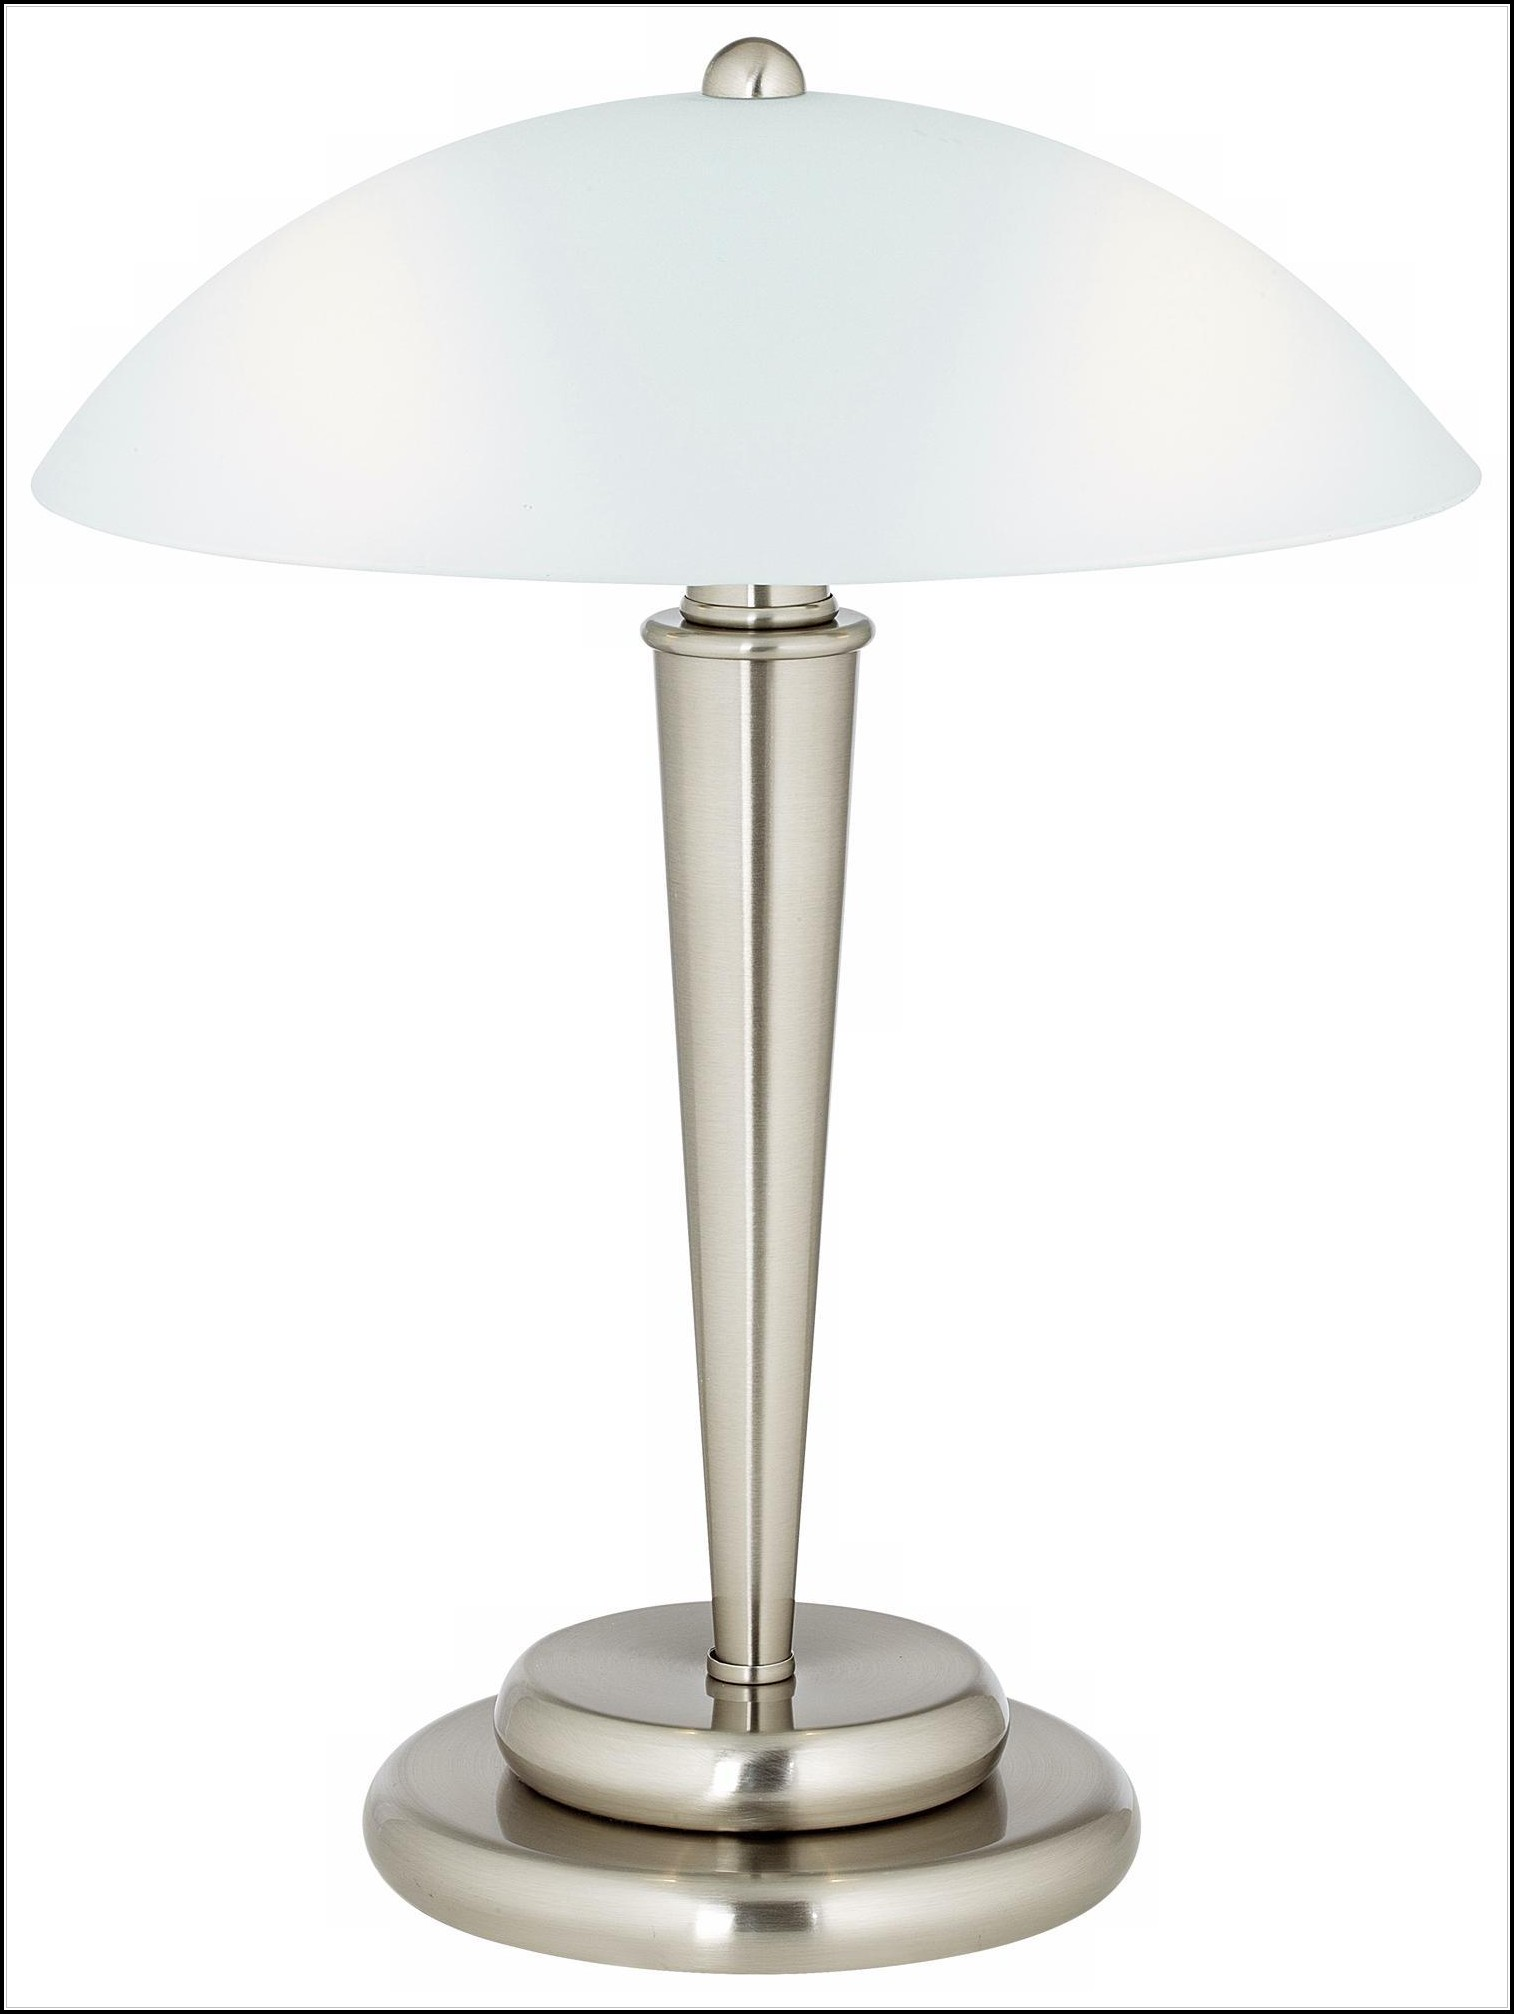 Replacement Glass Lamp Shades For Table Lamps